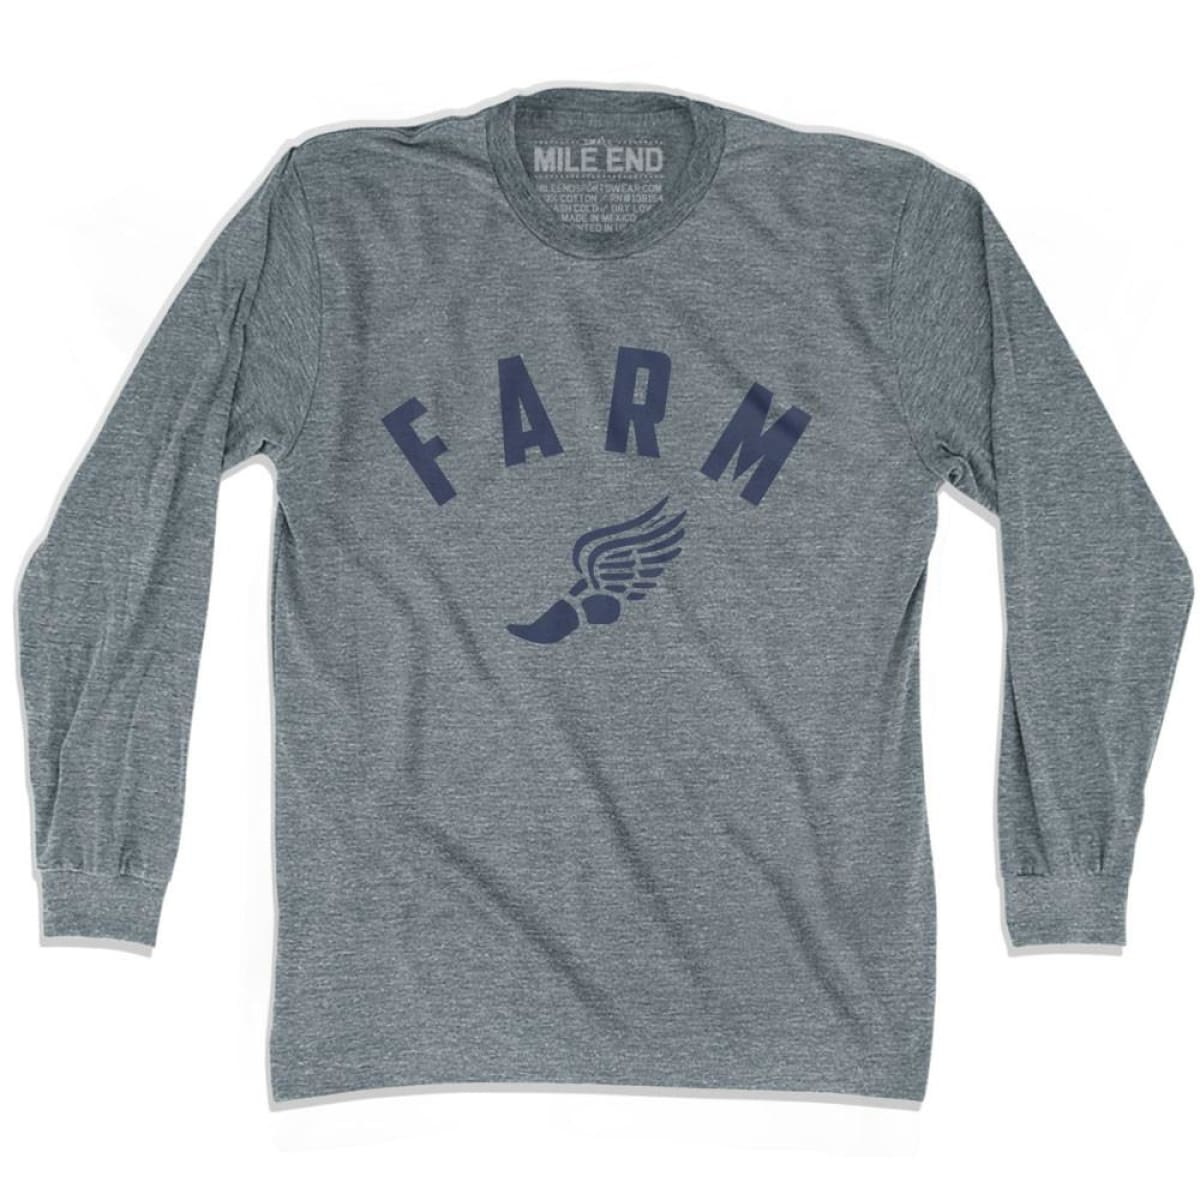 Farm Track Long Sleeve T-shirt - Athletic Grey / Adult X-Small - Mile End Track